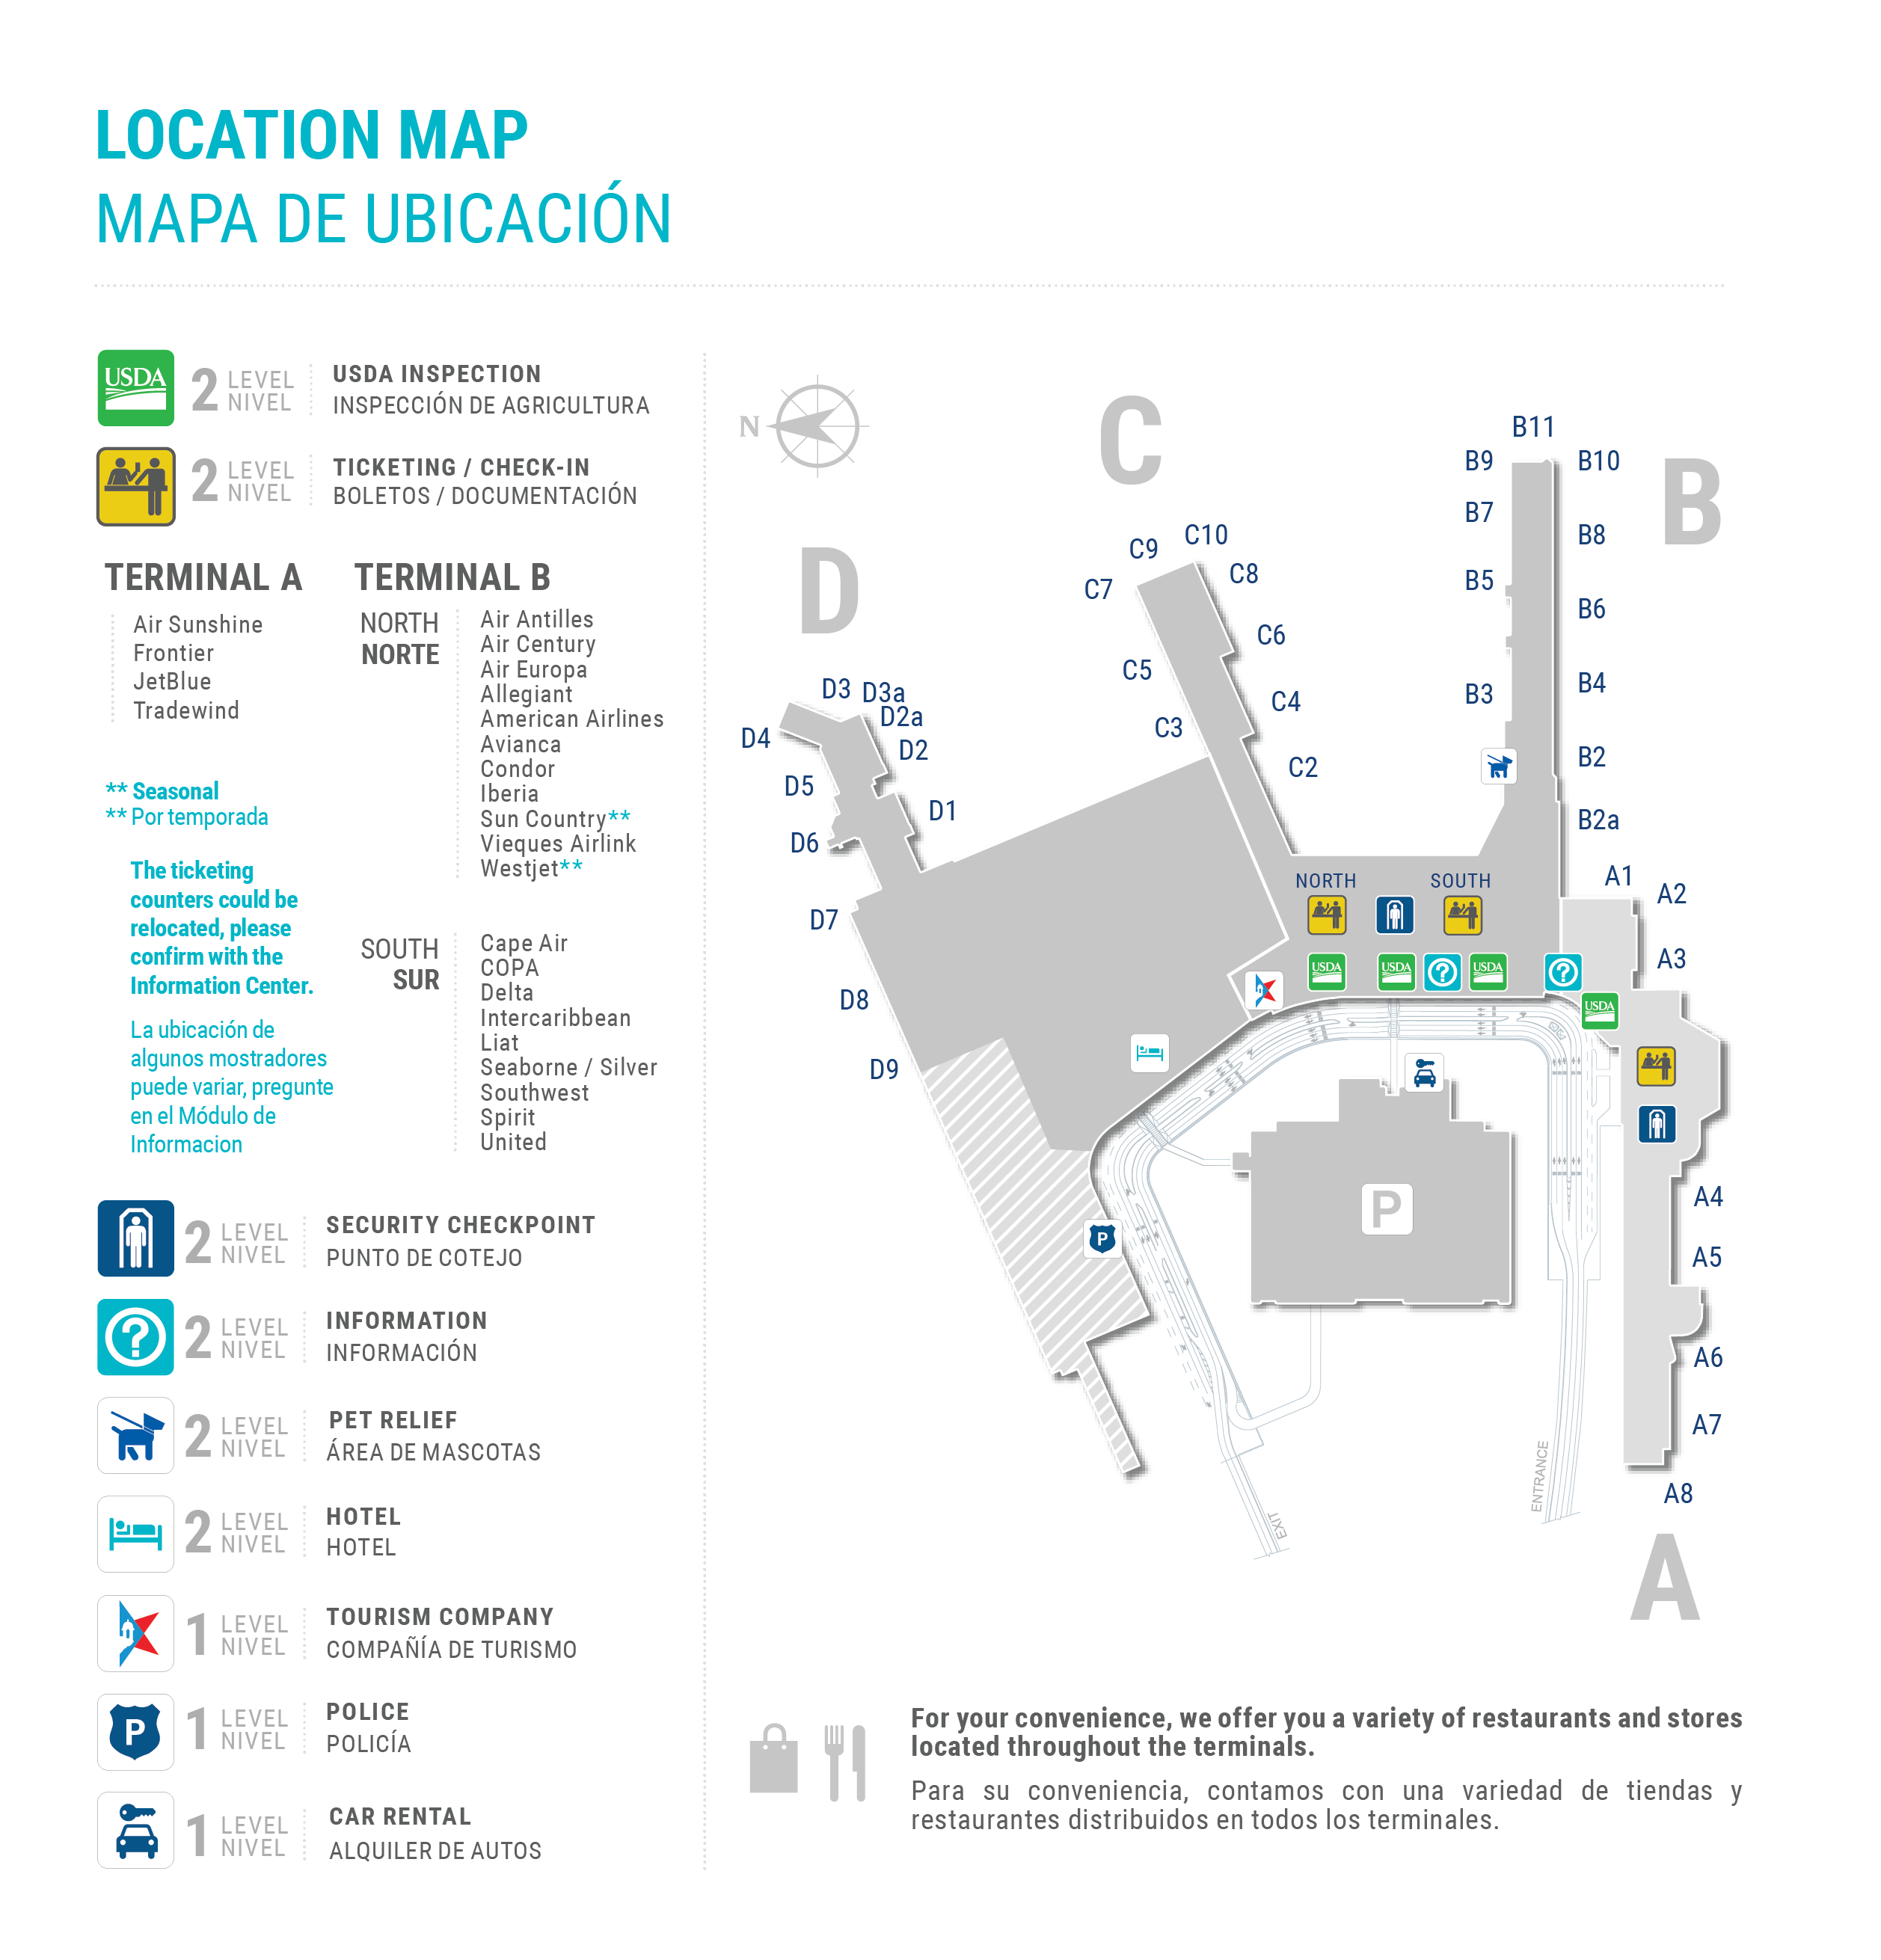 luis munoz marin airport map Maps Luis Munoz Marin International Airport luis munoz marin airport map